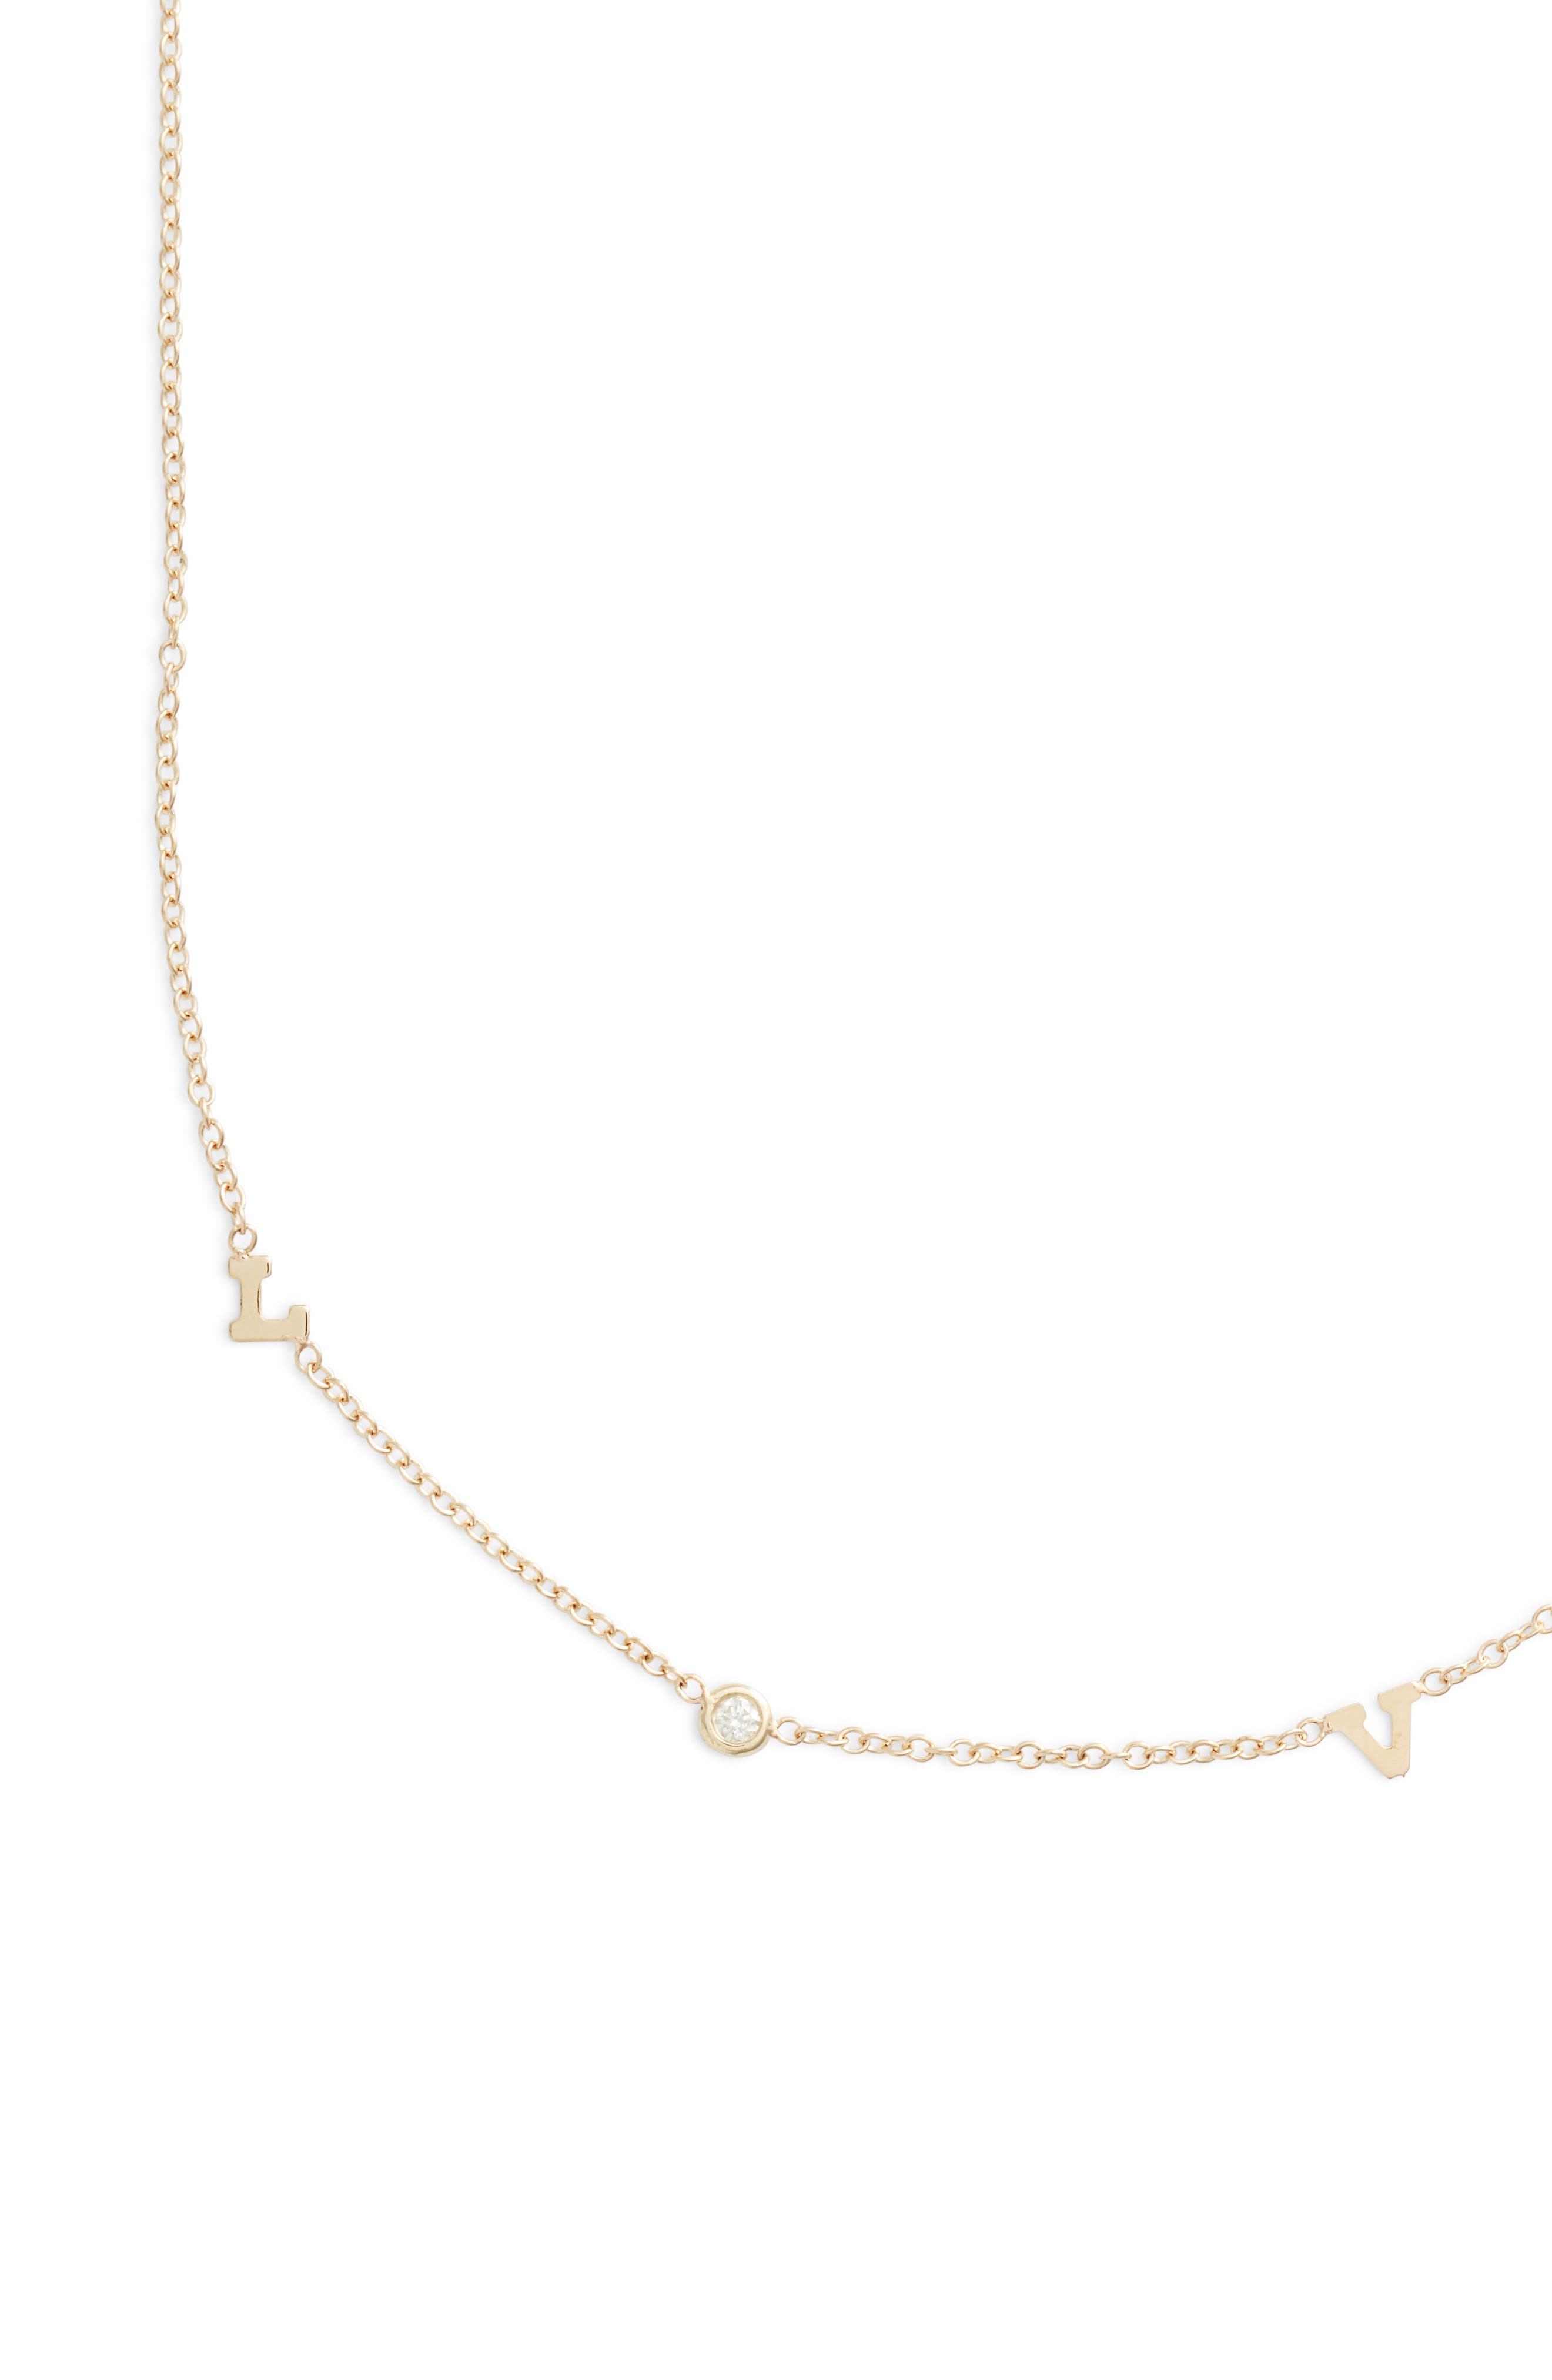 Itty Bitty Love Diamond Necklace,                             Alternate thumbnail 2, color,                             Yellow Gold